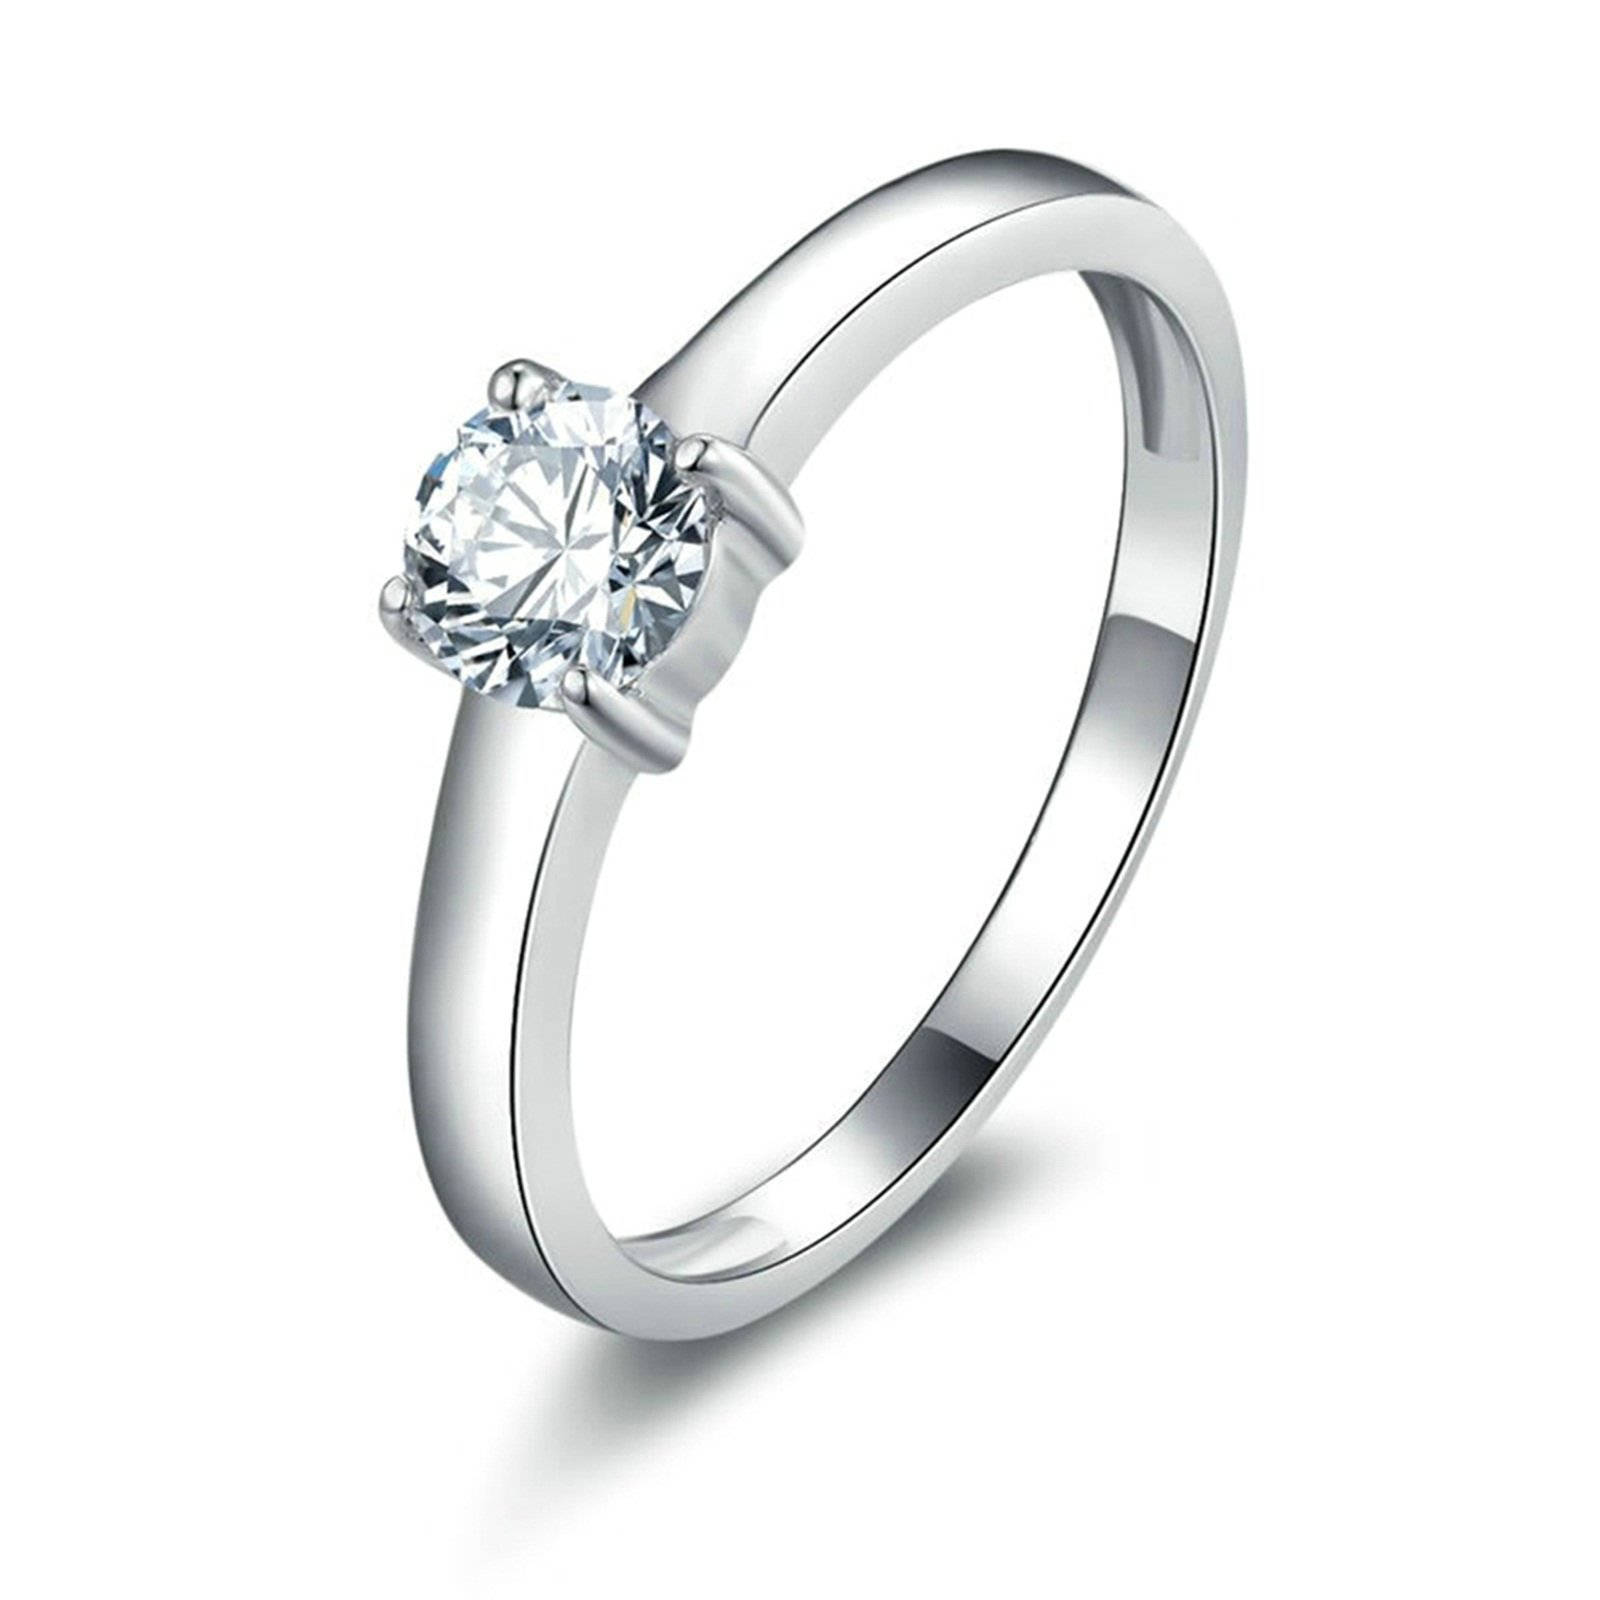 Daesar Promise Ring Personalized 4-Prong Setting Round White Cubic Zirconia Ring Size 7